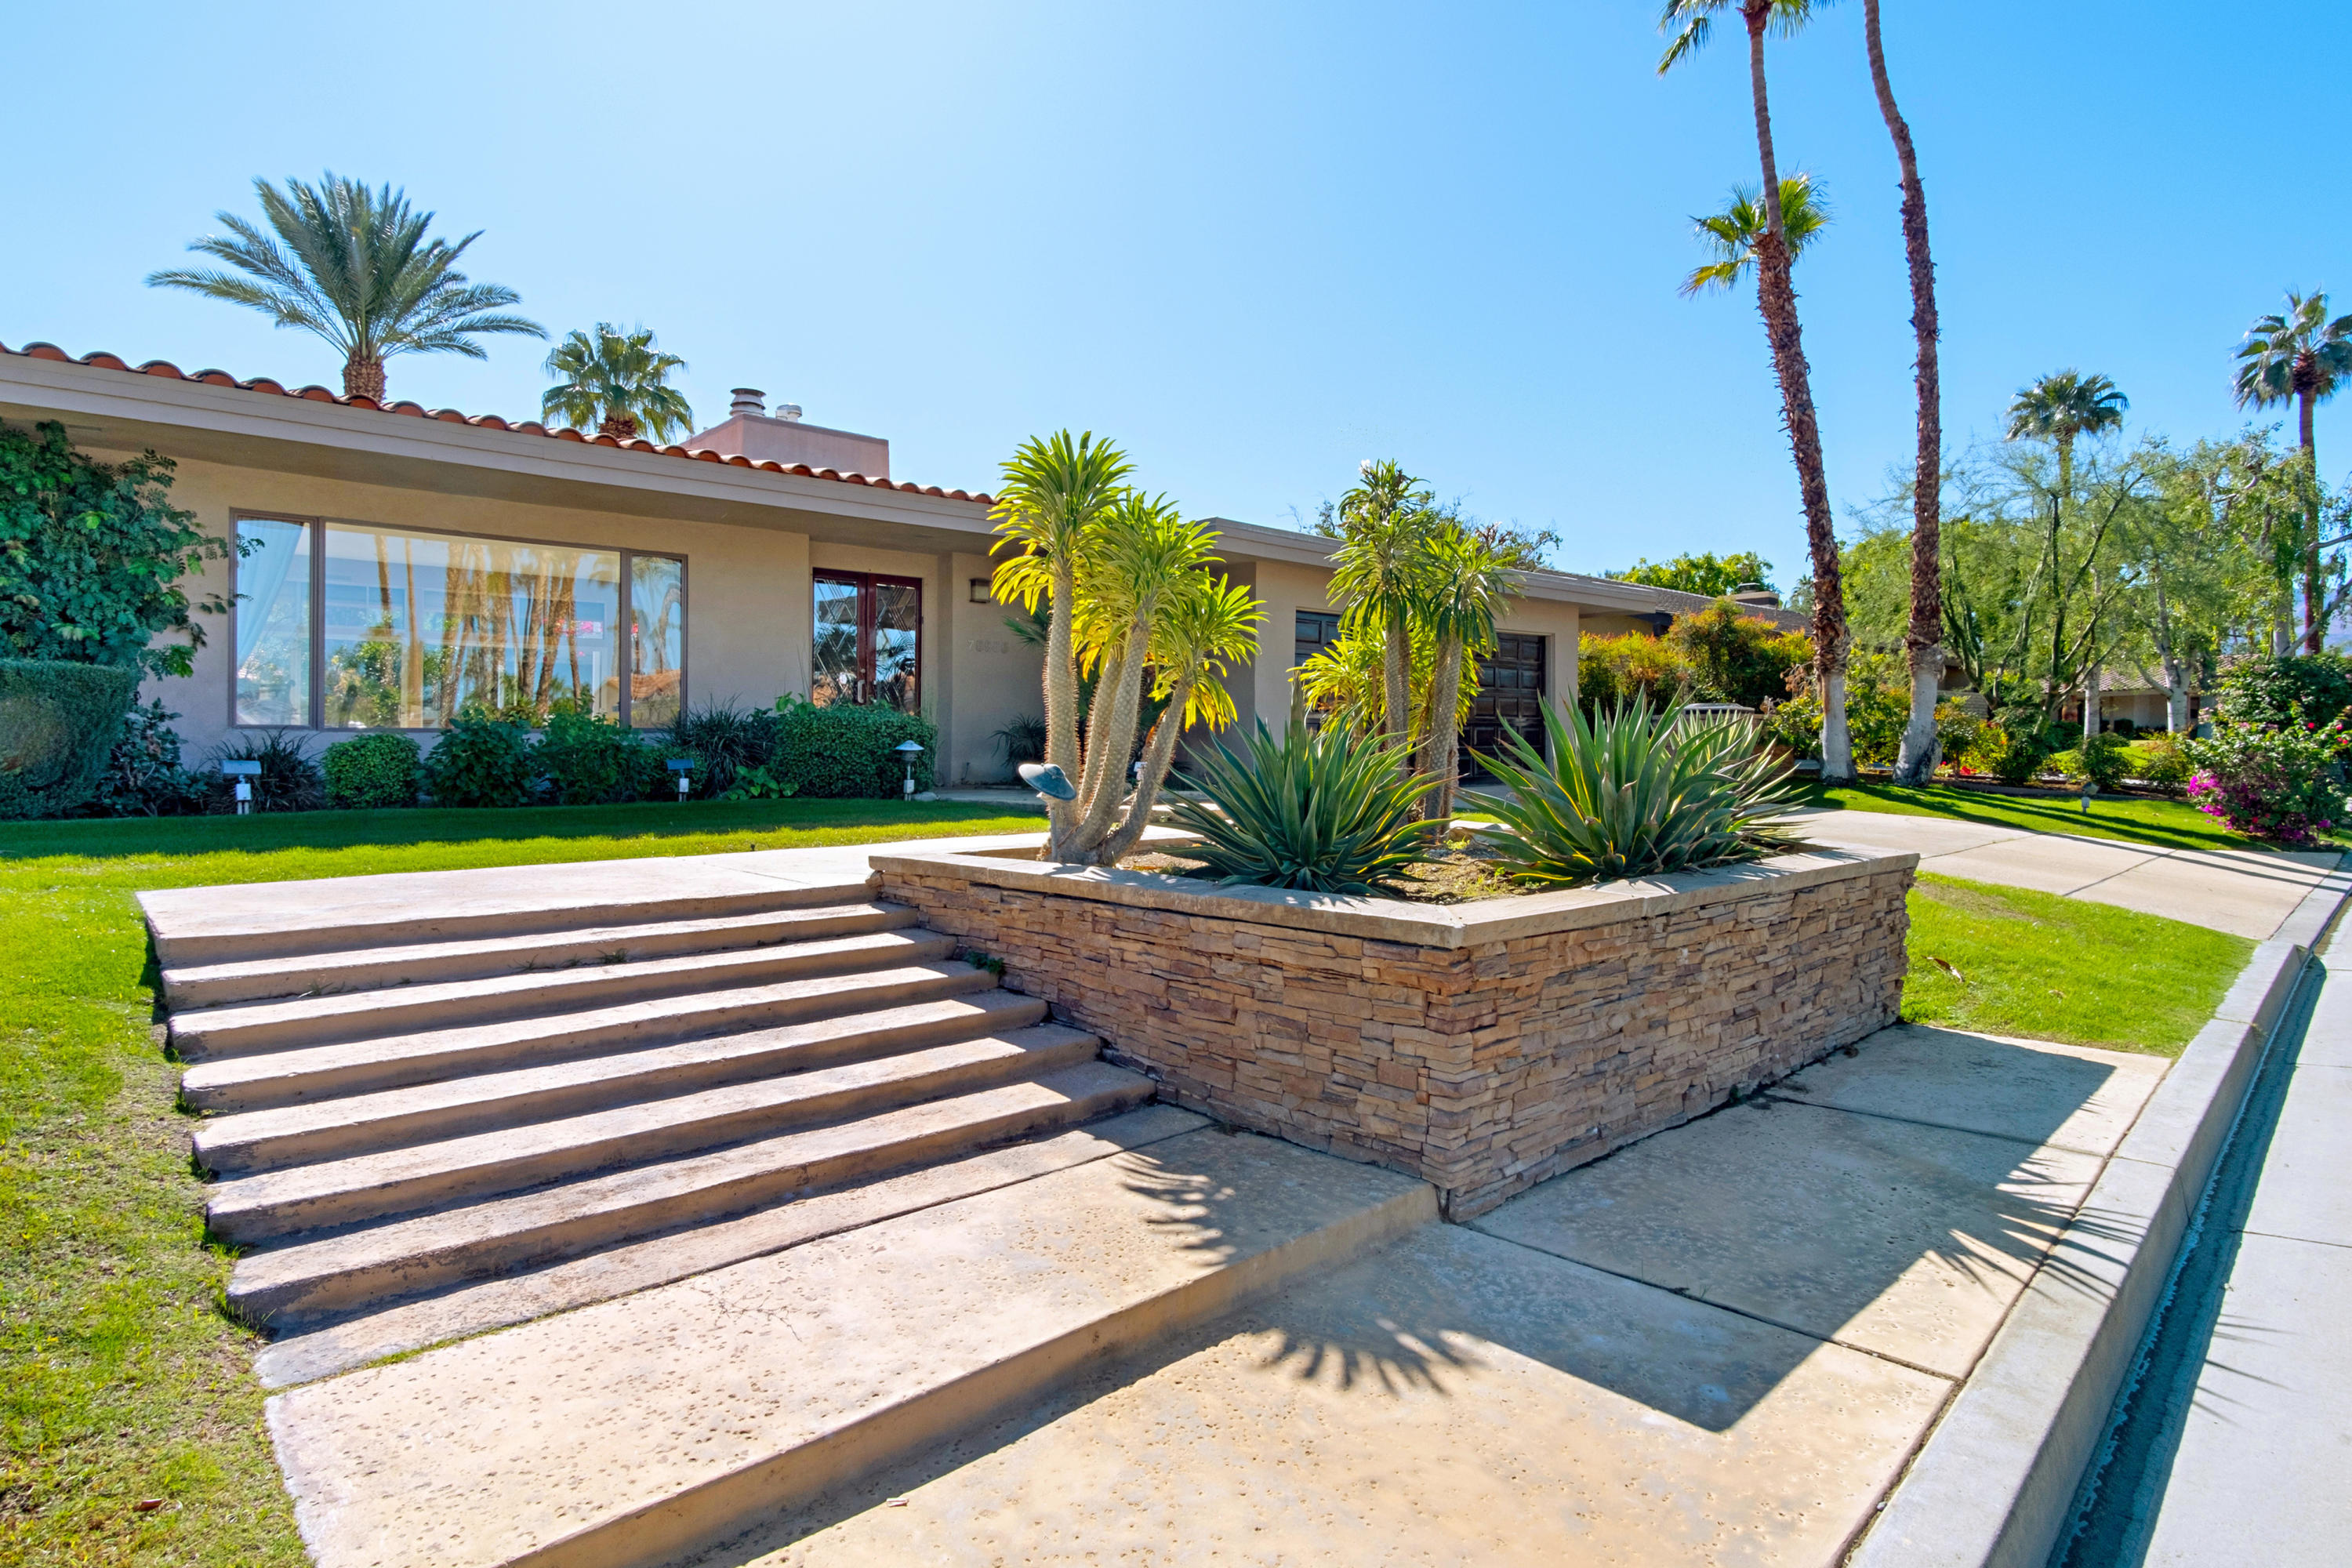 75555 Mary Lane, Indian Wells, California 92210, 3 Bedrooms Bedrooms, ,3 BathroomsBathrooms,Residential,For Sale,75555 Mary Lane,219041076